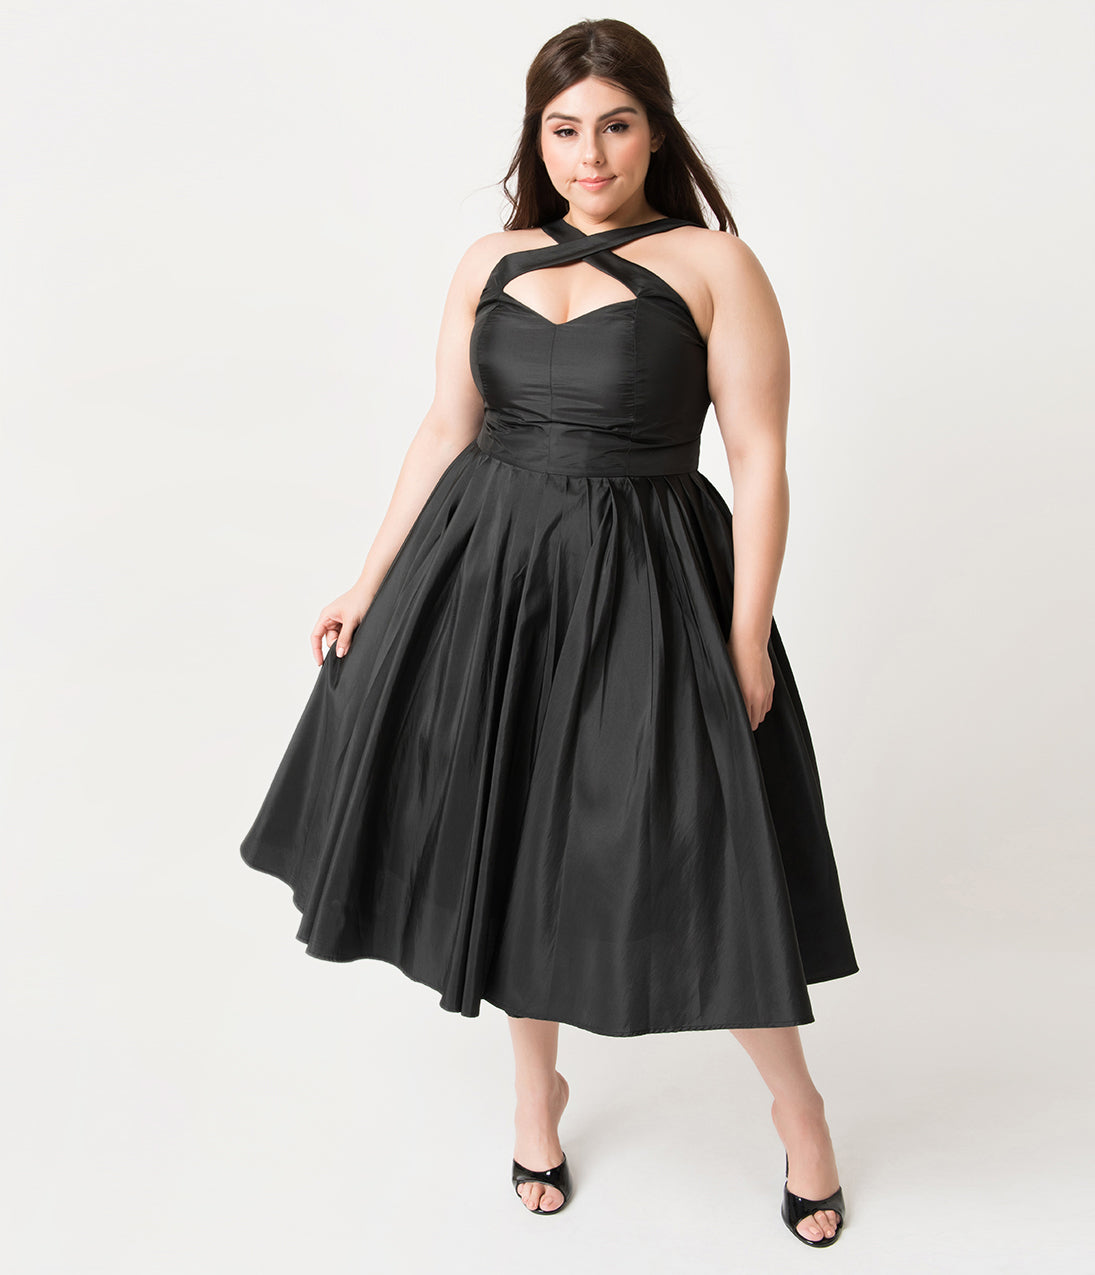 1950s Dresses, 50s Dresses | 1950s Style Dresses Unique Vintage Plus Size 1950S Style Black Taffeta Cross Halter Joy Party Dress $98.00 AT vintagedancer.com